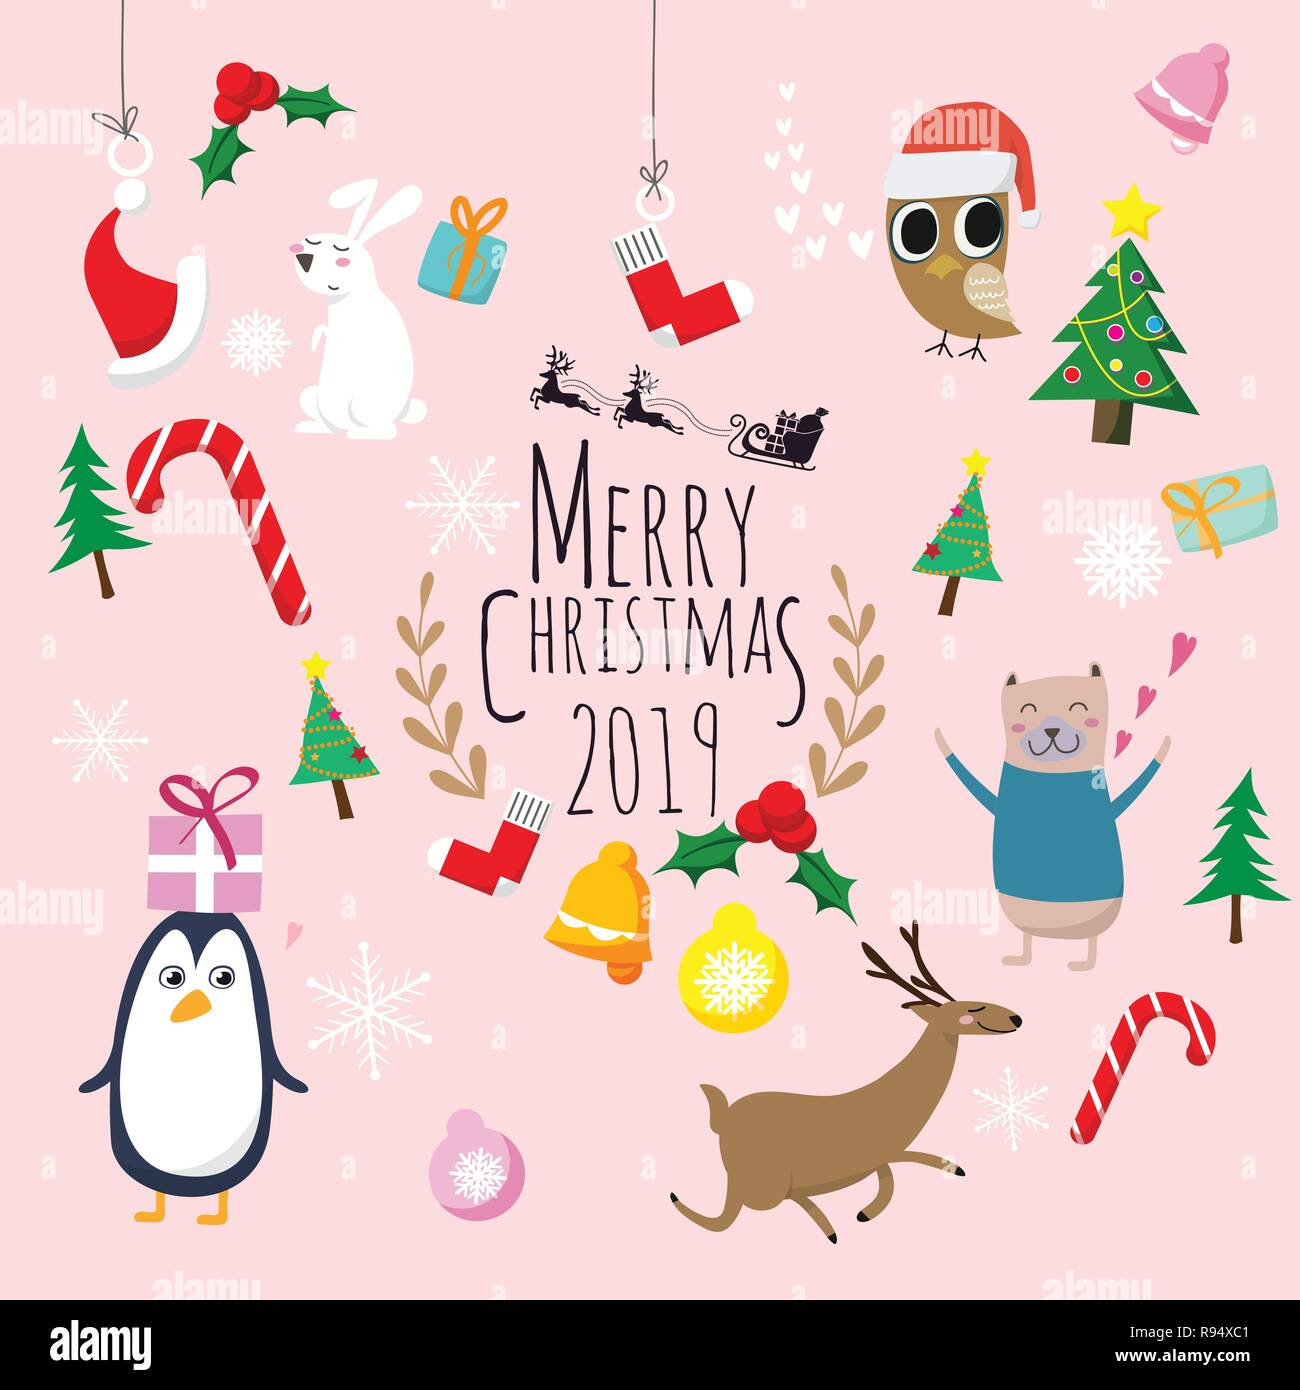 Merry Christmas 2019 Cute Cartoon Of Animals Character Christmas